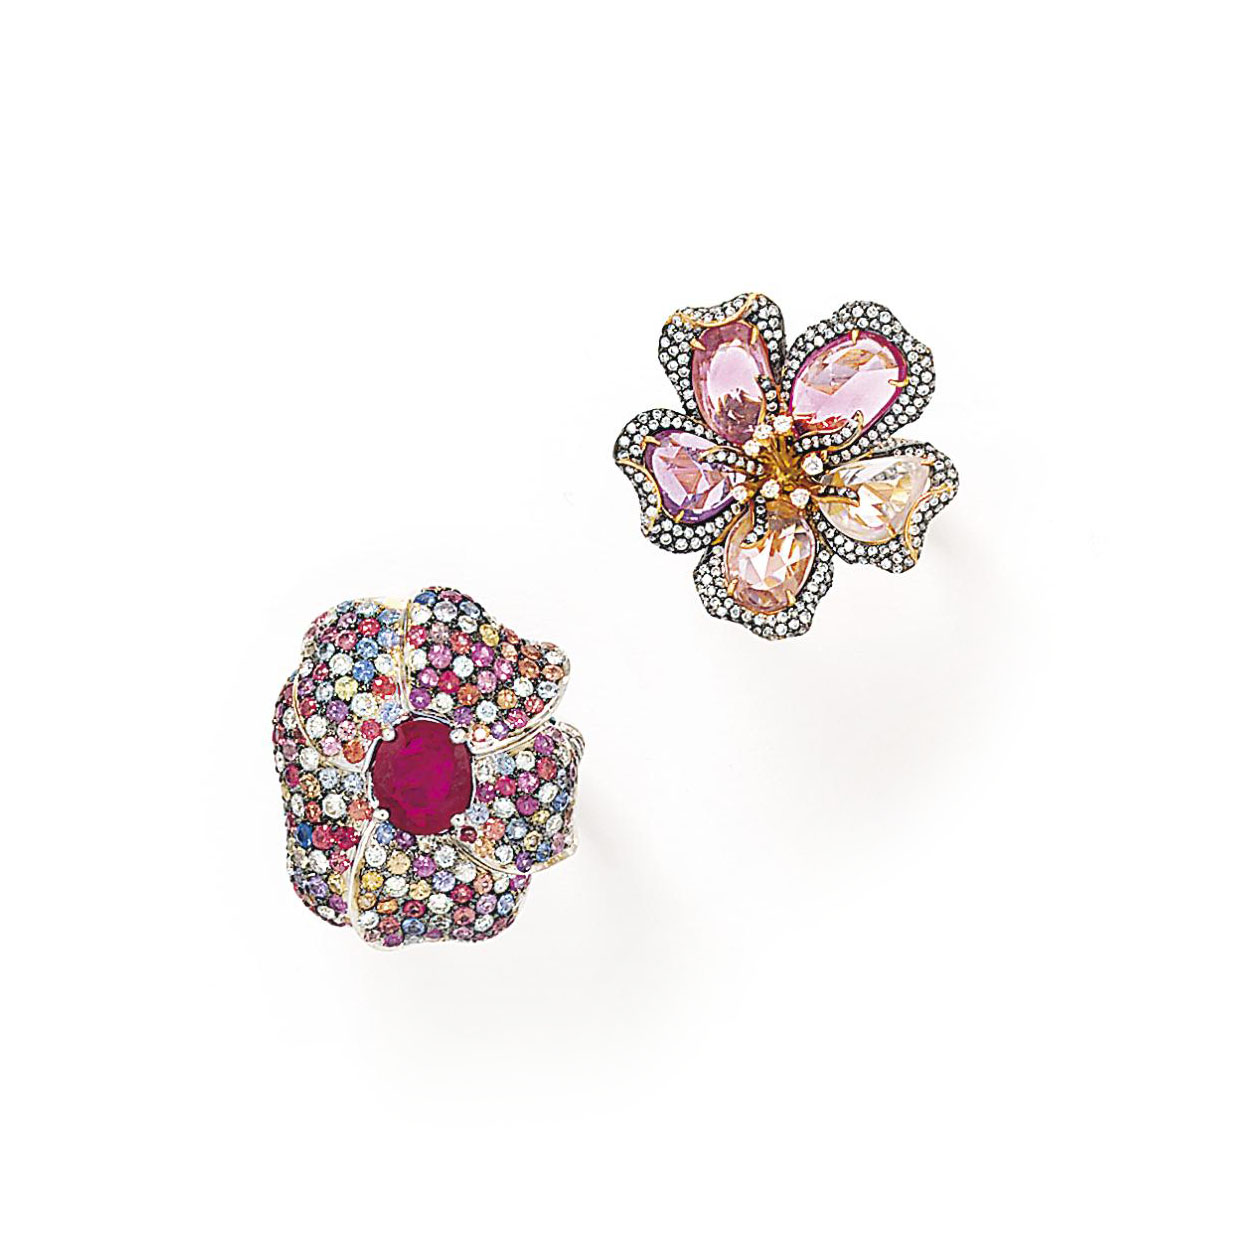 Two diamond and gem flower rings, one by Chatila, one by Jahan